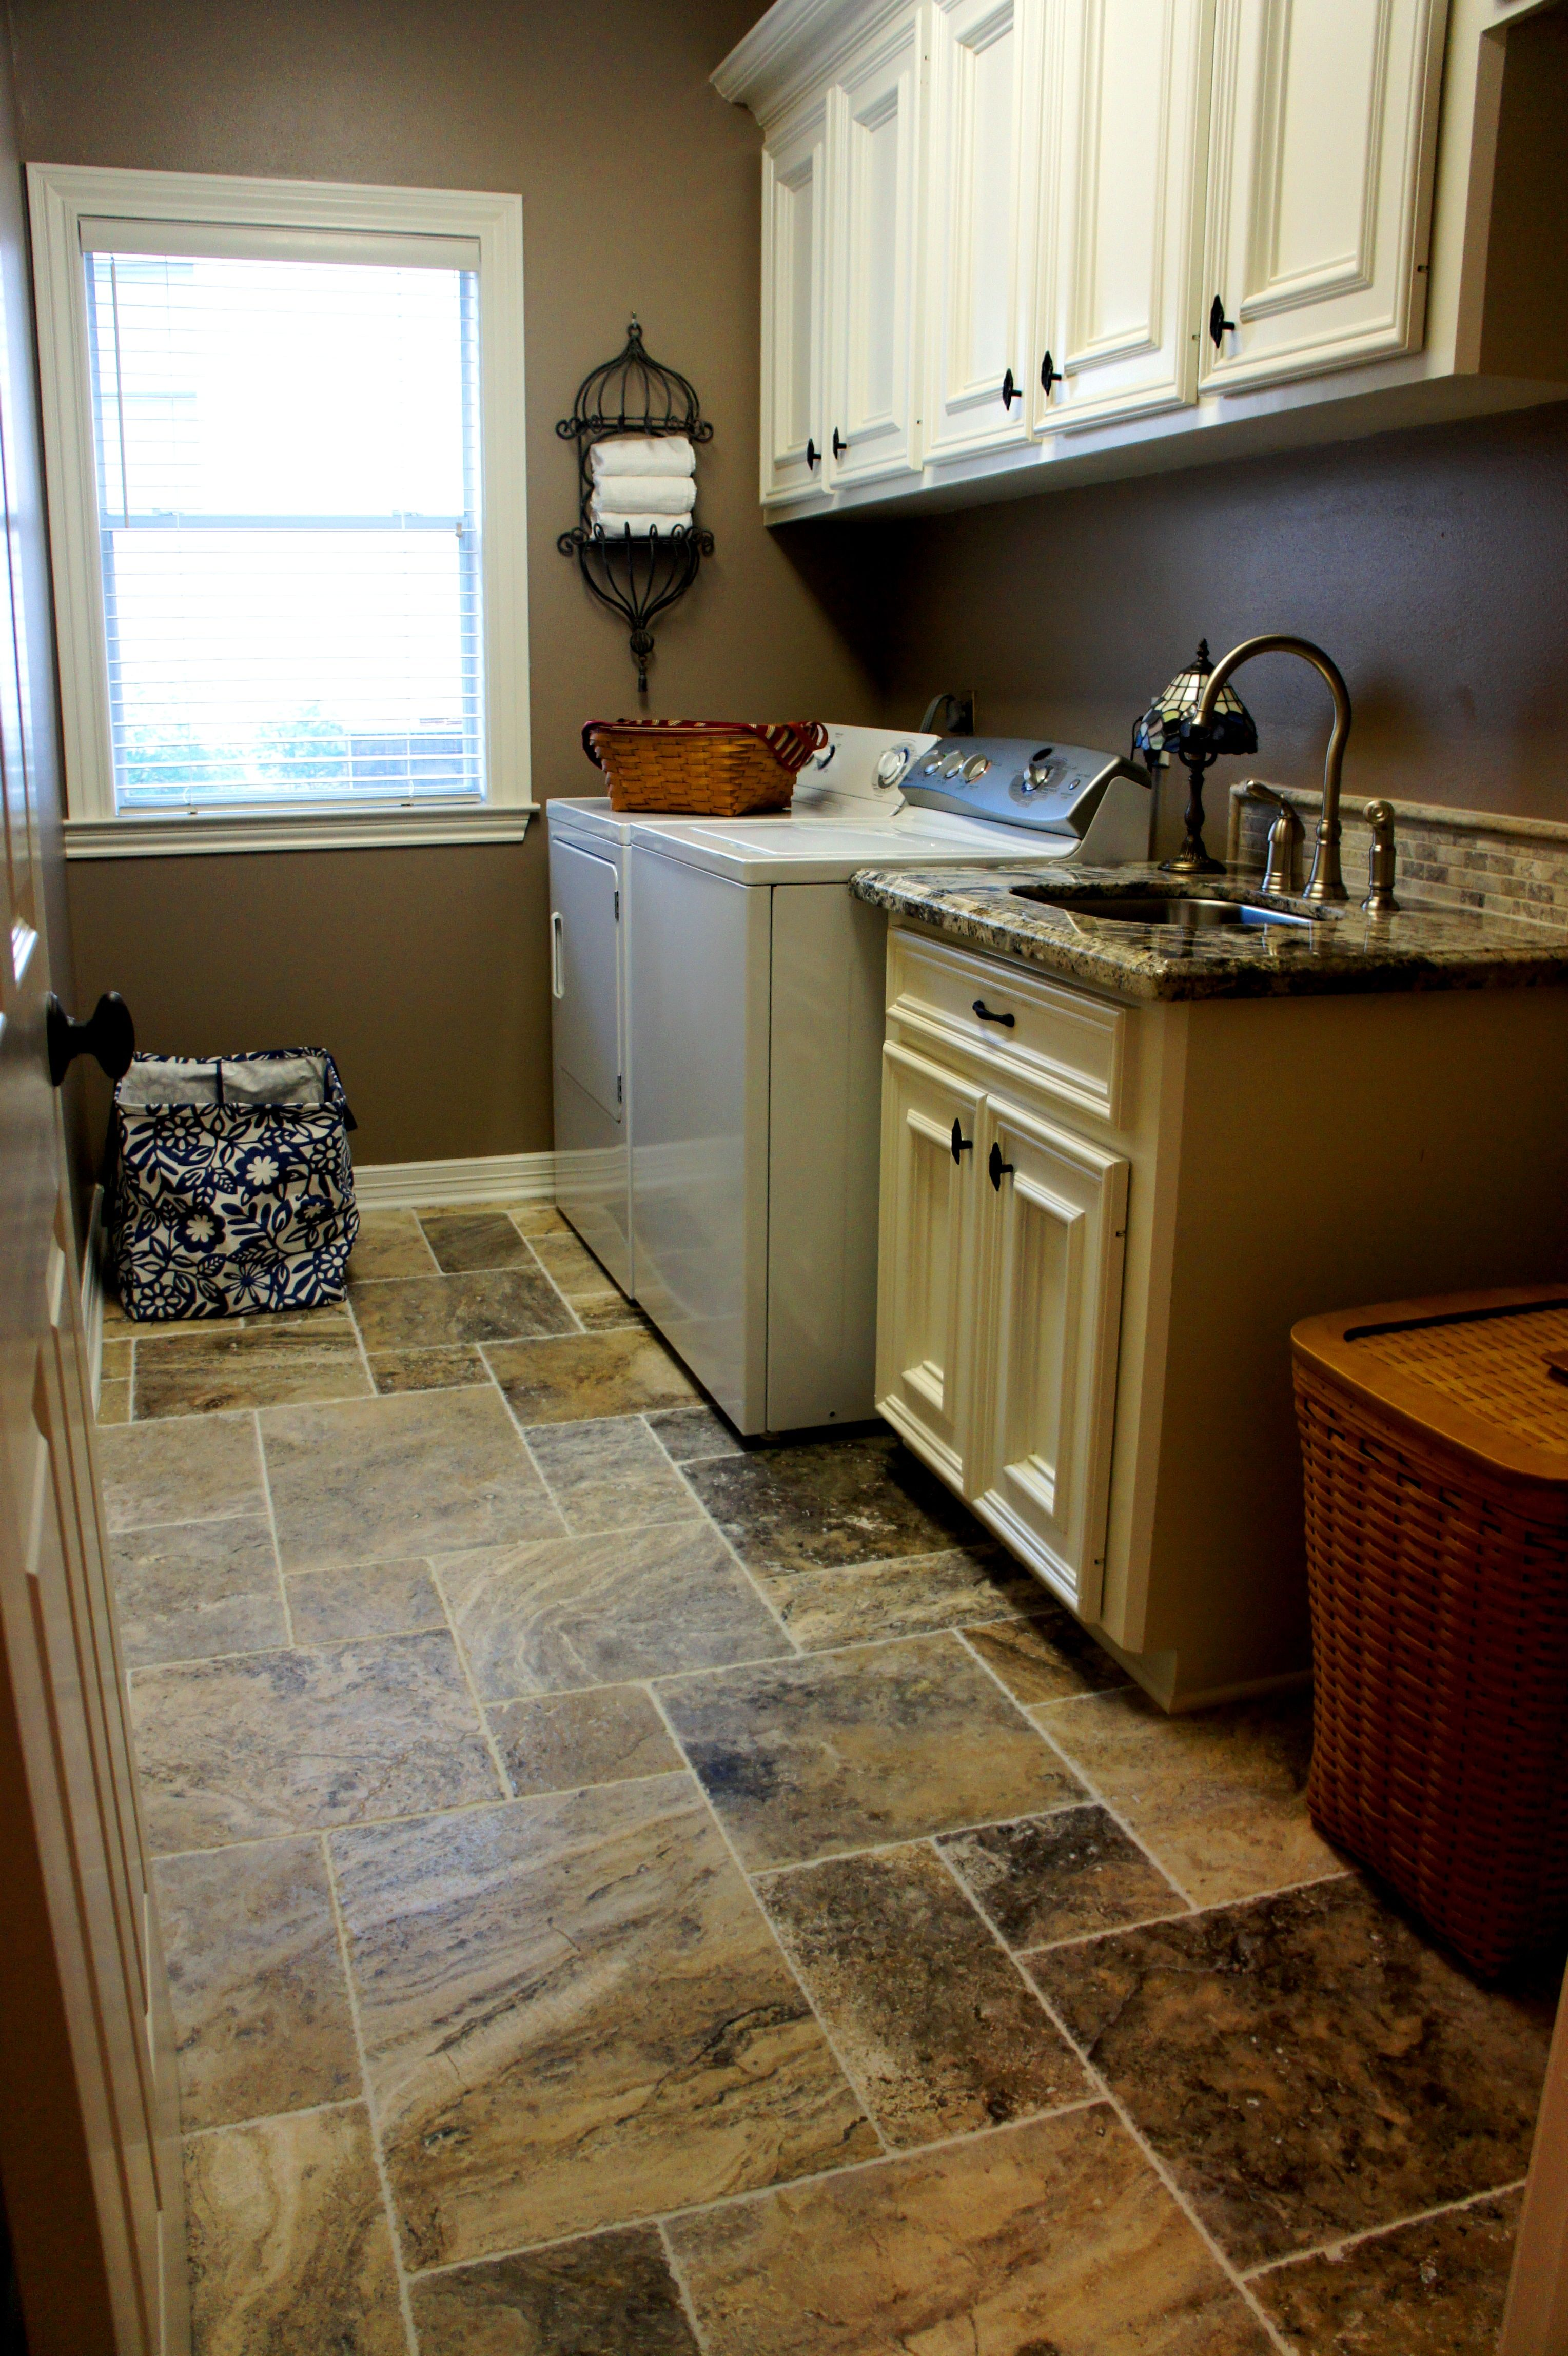 Laudry Room Remodeling Ideas, Travertine Tile Color Silver